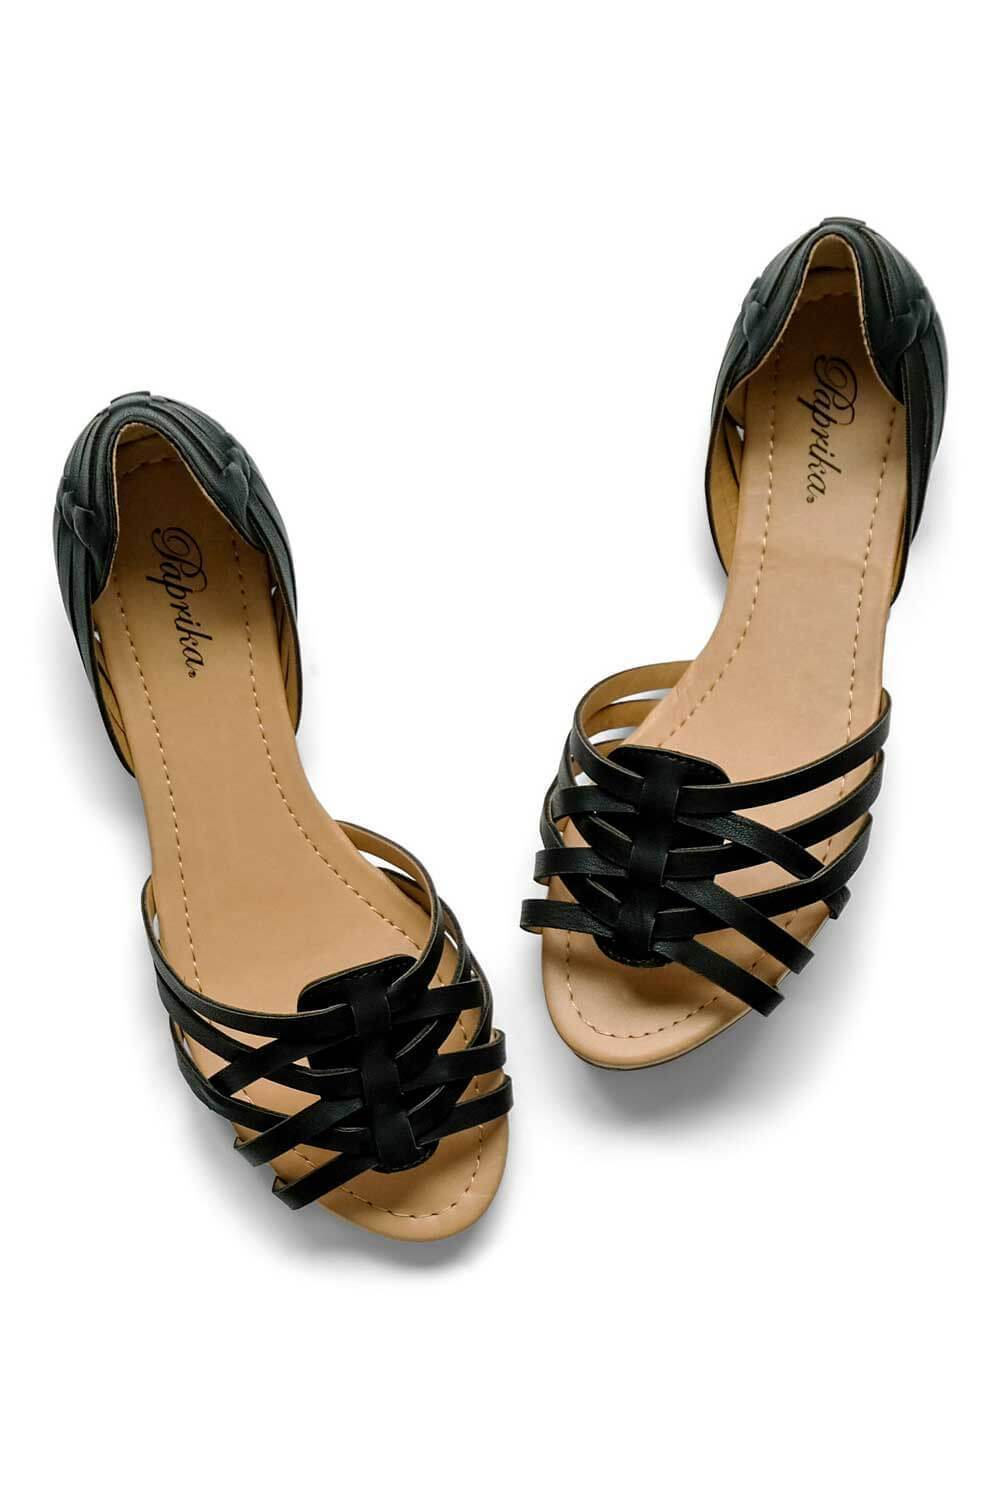 Marina Sandal Black - MILK MONEY